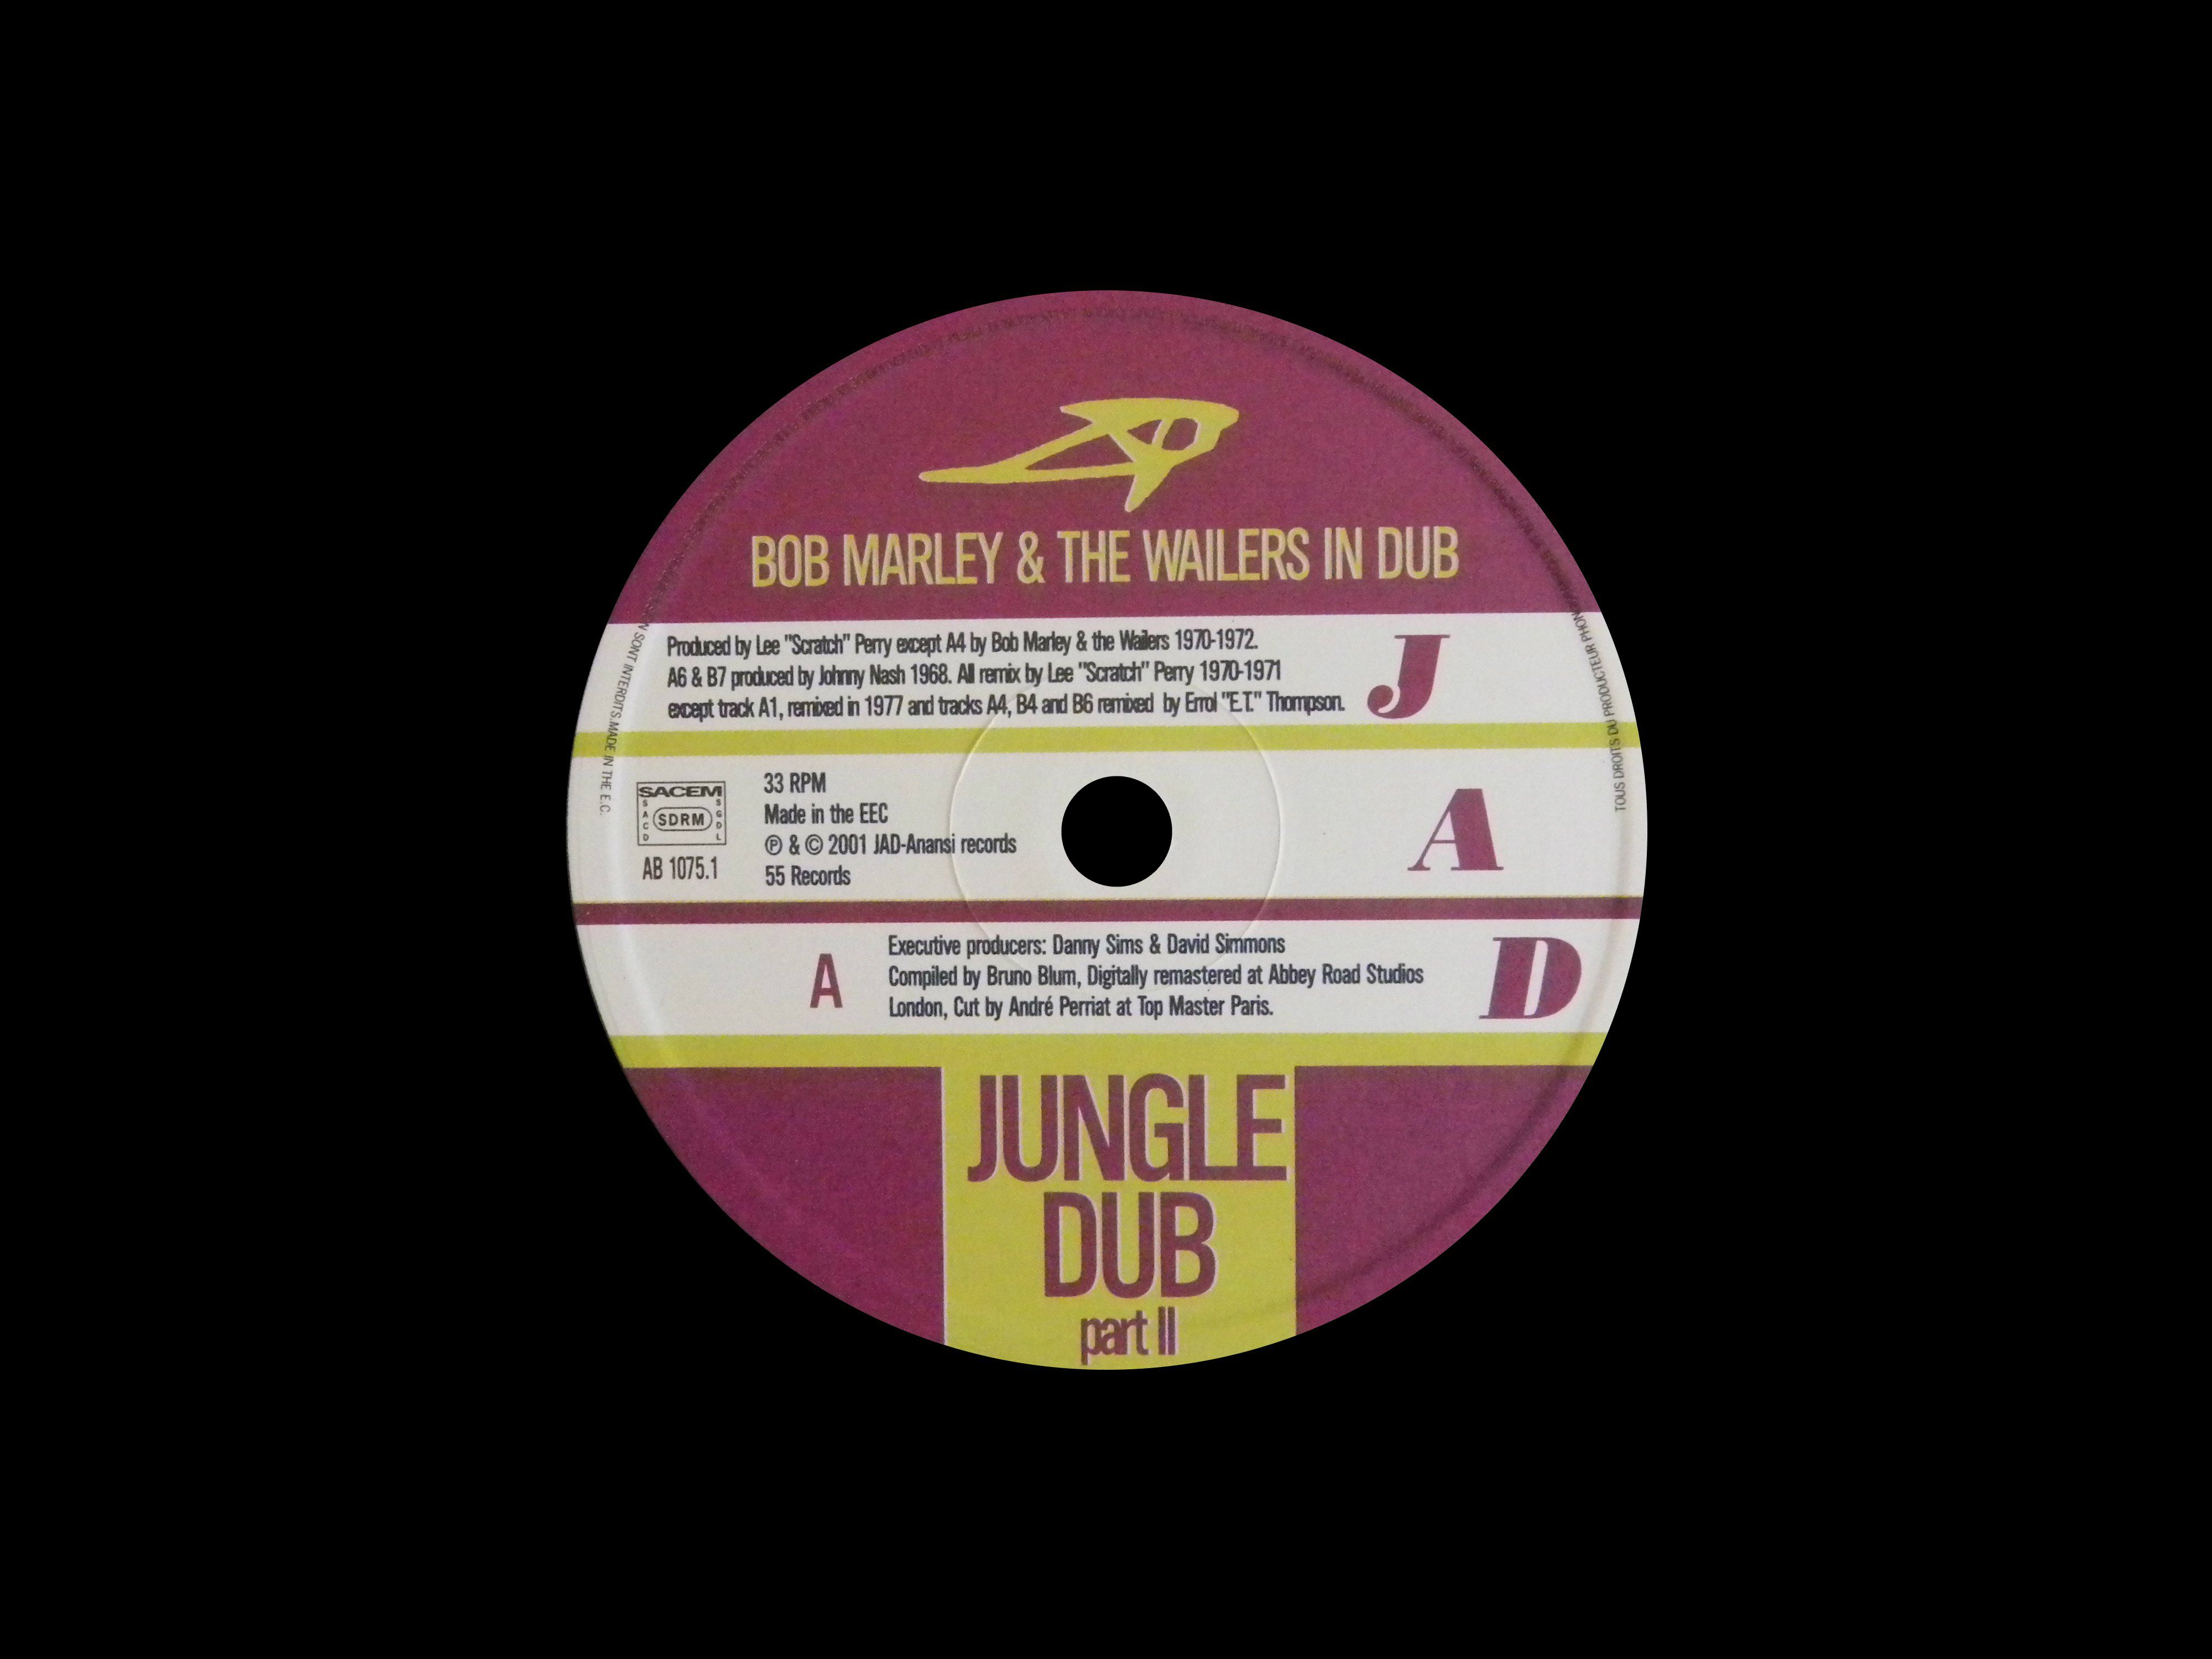 2001 - AB 1075 1   - Jungle Dub Part 2 (The Complete Wailers, Part 3)  - Jad Records